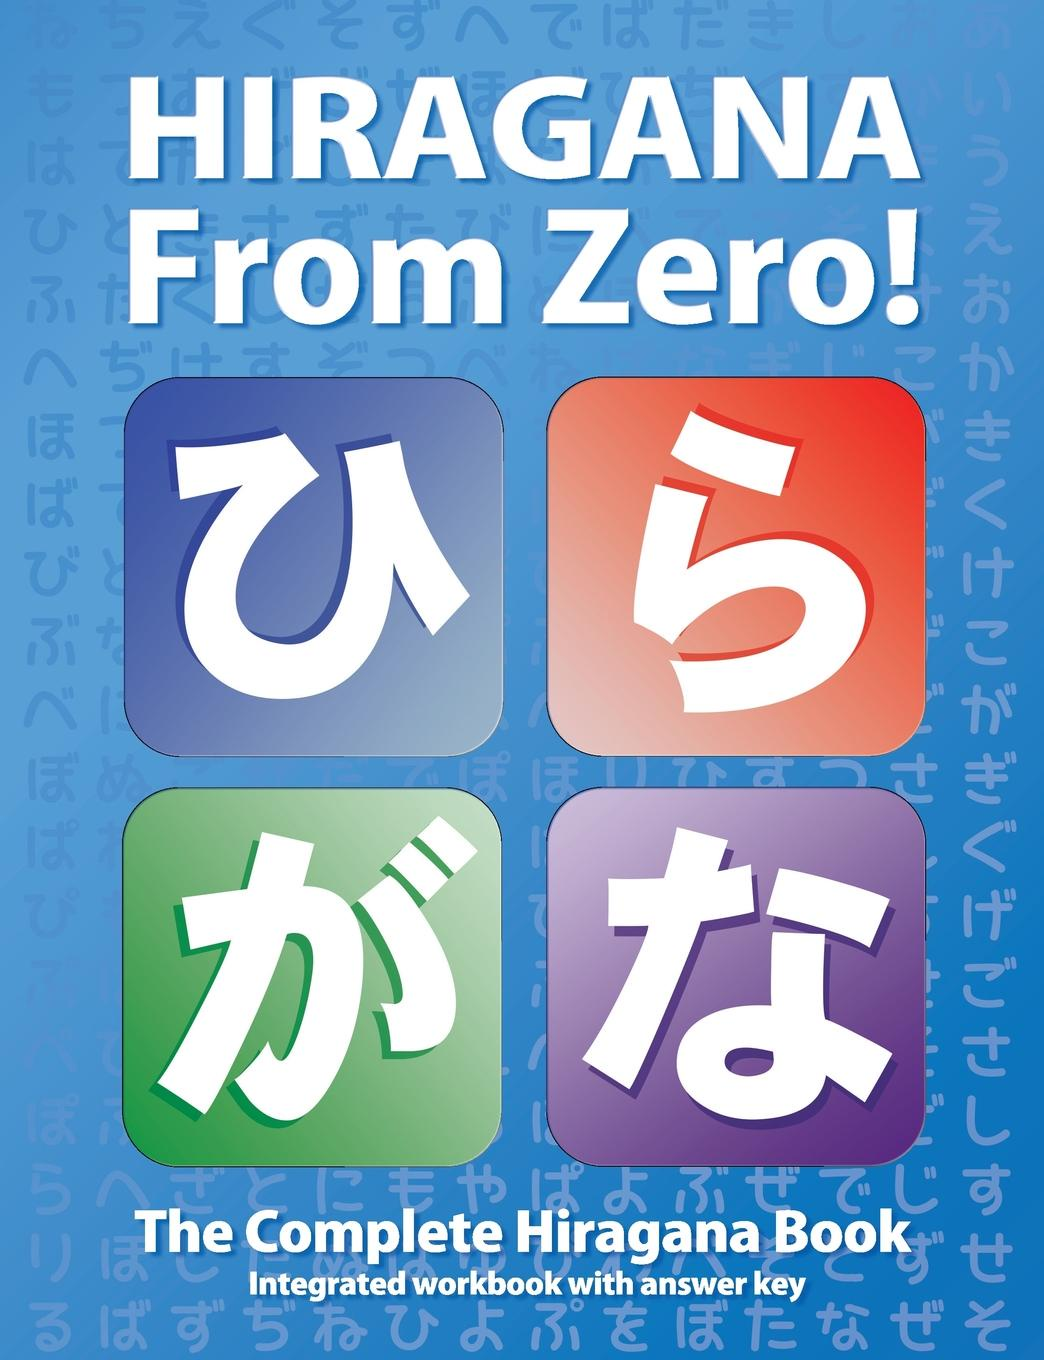 George Trombley, Yukari Takenaka Hiragana From Zero.. The Complete Japanese Hiragana Book, with Integrated Workbook and Answer Key sachiko toyozato japanese for beginners learning conversational japanese second edition includes audio disc